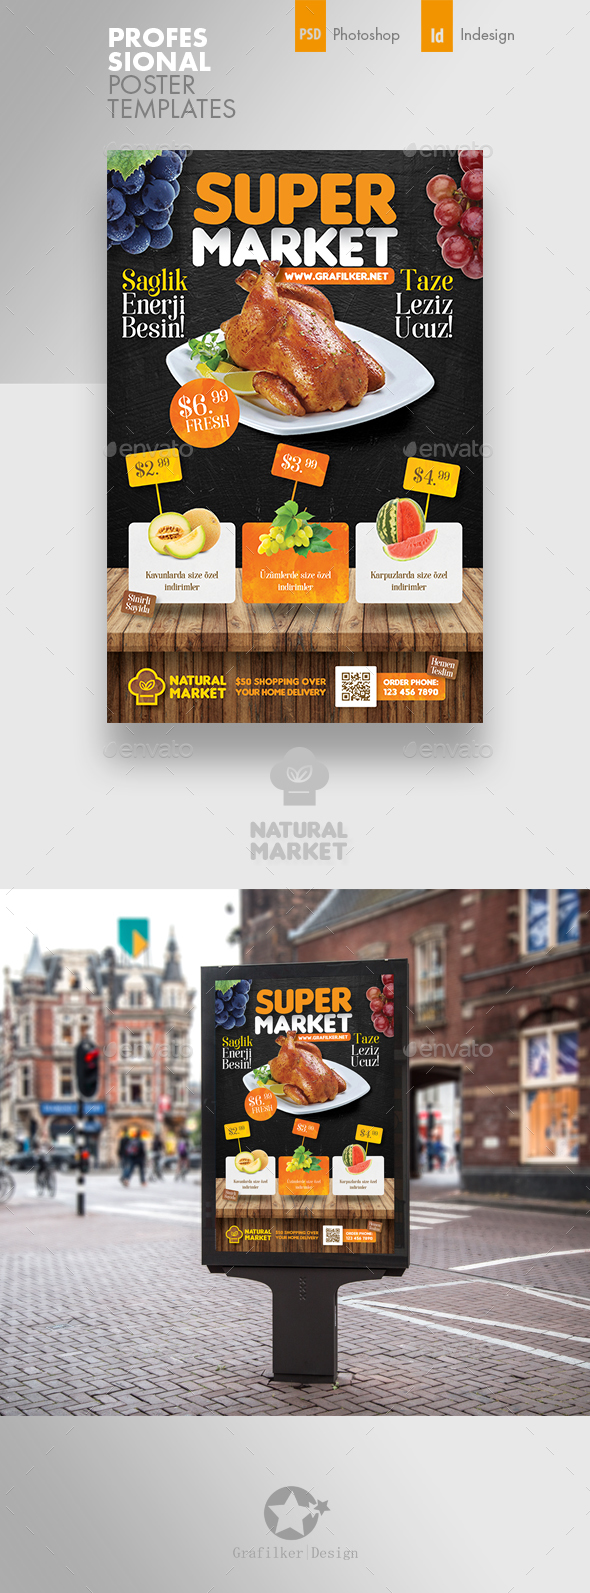 Supermarket Promotion Poster Templates - Signage Print Templates